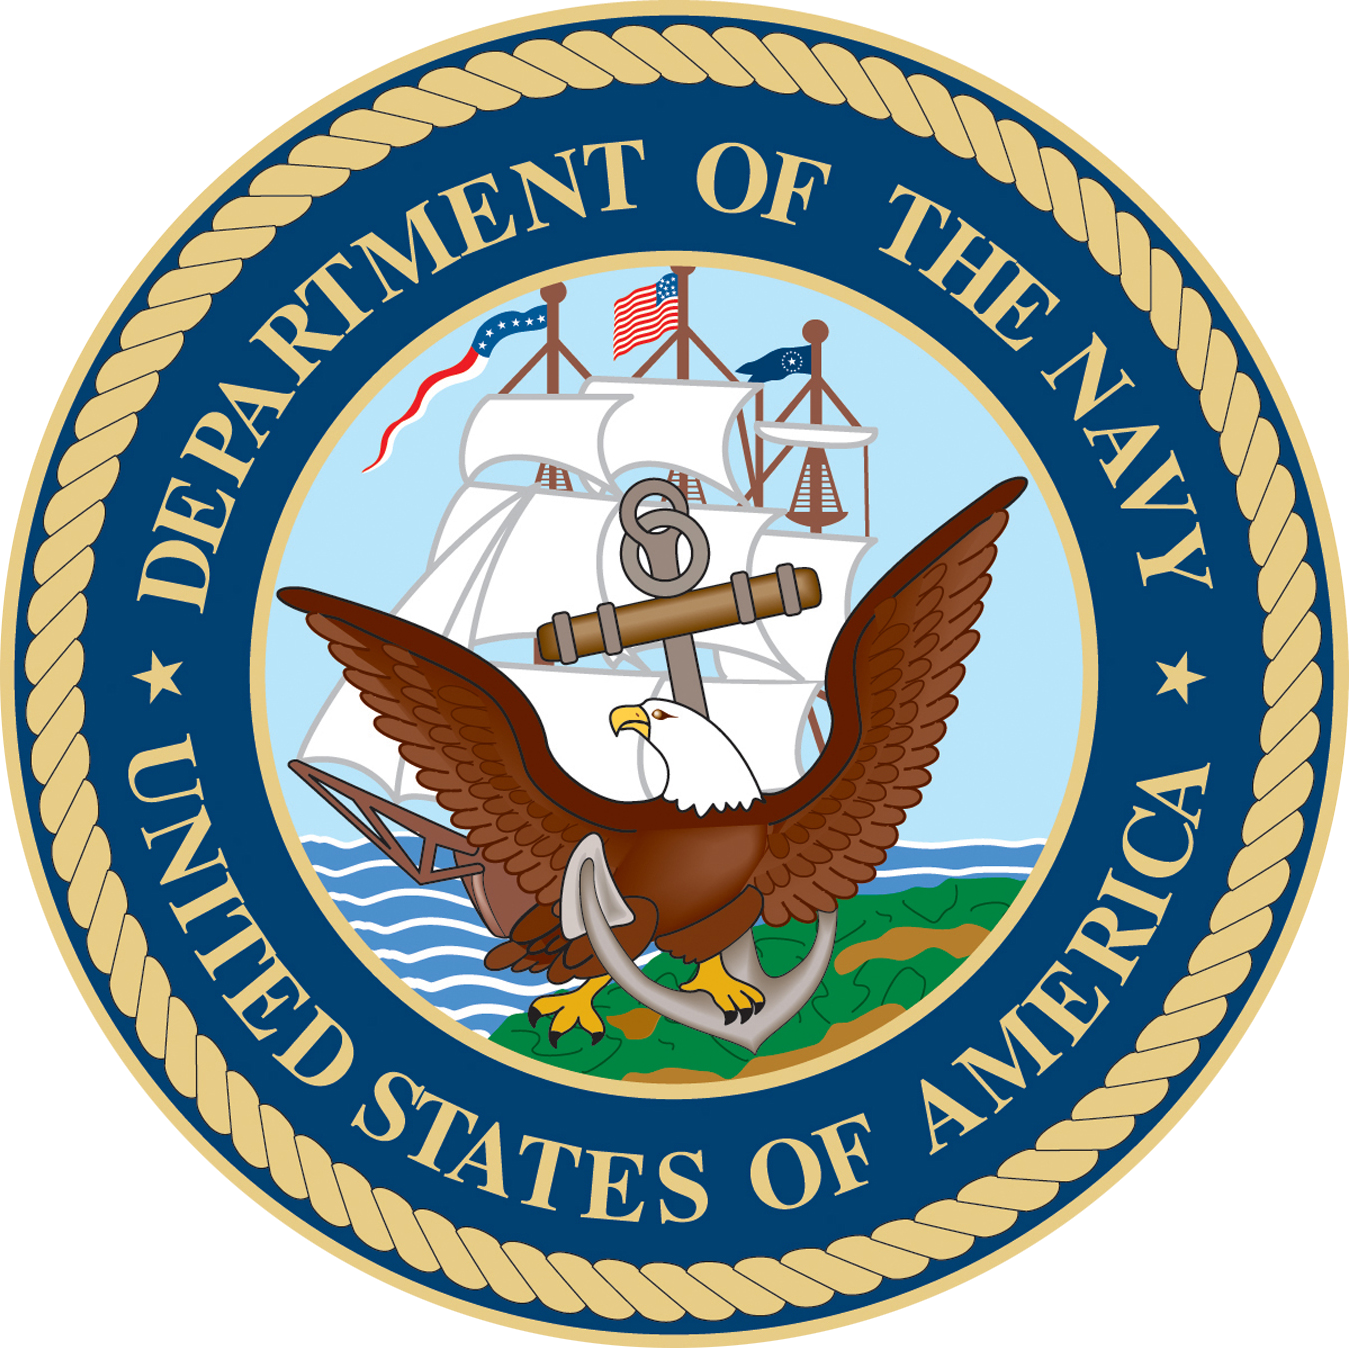 United States of America Department of the Navy